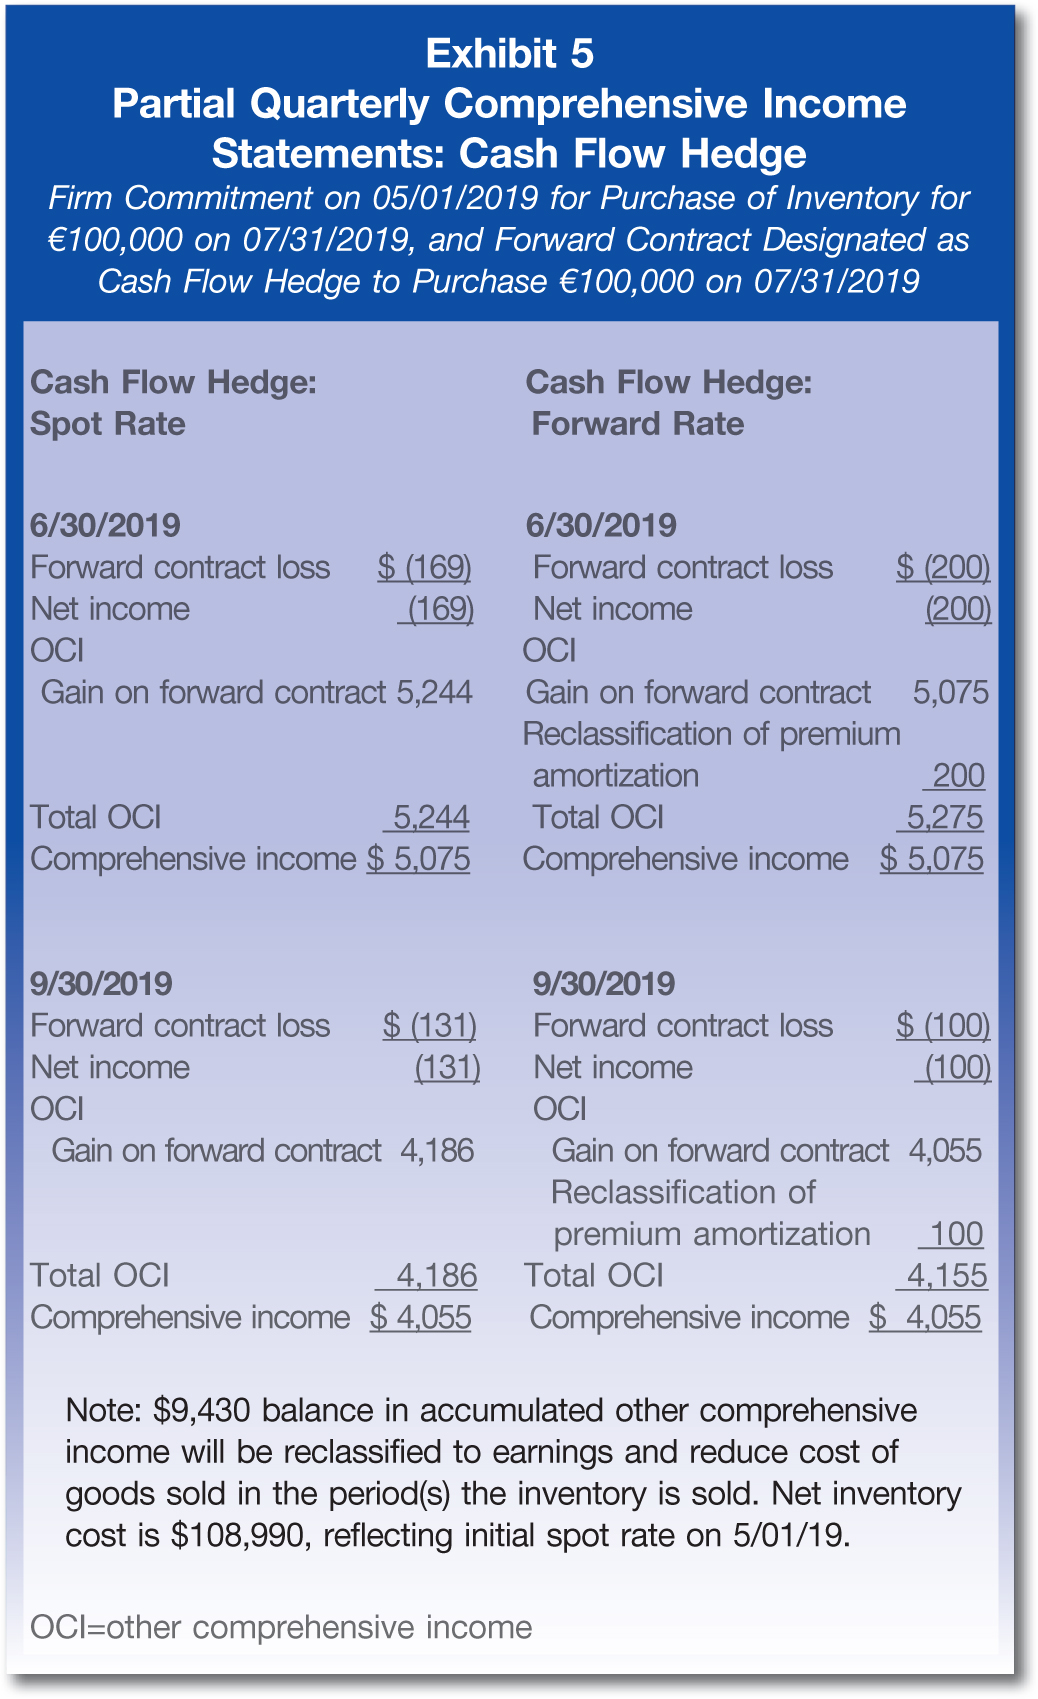 Firm Commitment on 05/01/2019 for Purchase of Inventory for €100,000 on 07/31/2019, and Forward Contract Designated as Cash Flow Hedge to Purchase €100,000 on 07/31/2019 Cash Flow Hedge: Spot Rate; Cash Flow Hedge: Forward Rate 6/30/2019; 6/30/2019 Forward contract loss; $ (169); Forward contract loss; $ (200) Net income; (169); Net income; (200) OCI; OCI Gain on forward contract; 5,244; Gain on forward contract; 5,075 Reclassification of premium amortization; 200 Total OCI; 5,244; Total OCI; 5,275 Comprehensive income; $ 5,075; Comprehensive income; $ 5,075 9/30/2019; 9/30/2019 Forward contract loss; $ (131); Forward contract loss; $ (100) Net income; (131); Net income; (100) OCI; OCI Gain on forward contract; 4,186; Gain on forward contract; 4,055 Reclassification of premium amortization; 100 Total OCI; 4,186; Total OCI; 4,155 Comprehensive income; $ 4,055; Comprehensive income; $ 4,055 Note: $9,430 balance in accumulated other comprehensive income will be reclassified to earnings and reduce cost of goods sold in the period(s) the inventory is sold. Net inventory cost is $108,990, reflecting initial spot rate on 5/01/19. OCI=other comprehensive income